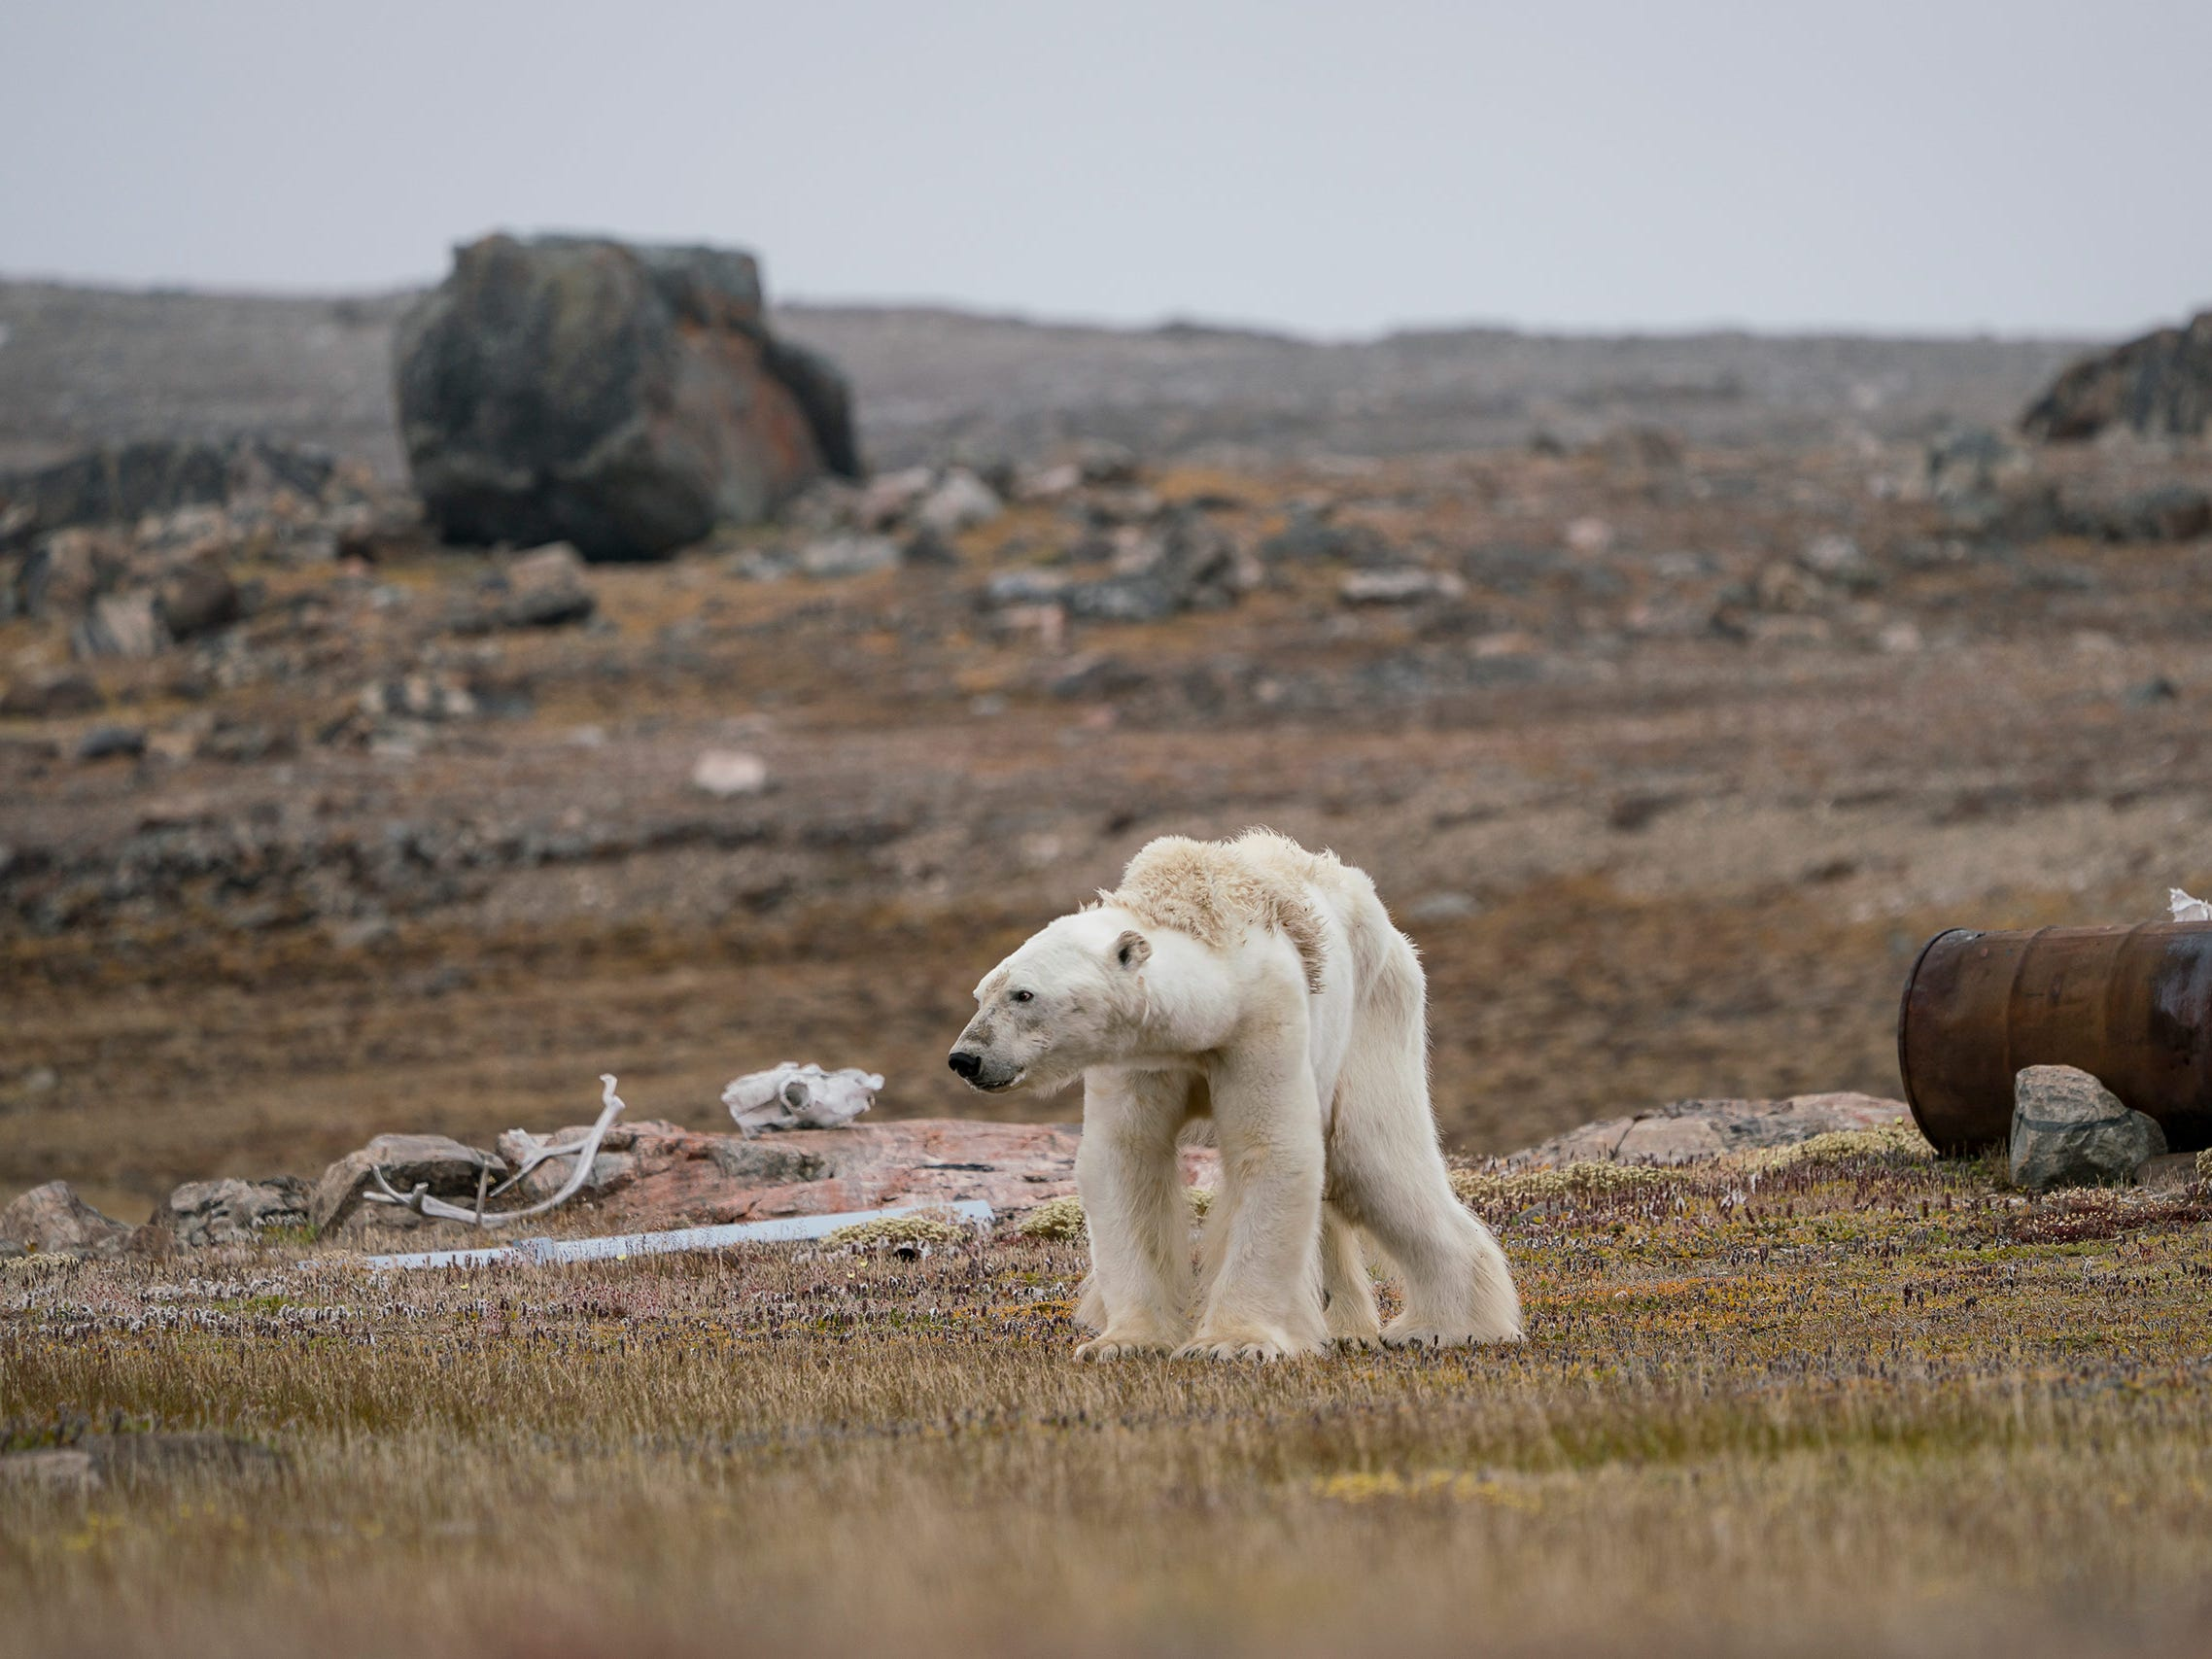 """Justin Hofman's photo """"A Polar Bear's Struggle"""" was named Highly Commended by the Wildlife Photographer of the Year LUMIX People's Choice Award. Hofman captures a starving polar bear at an abandoned hunter's camp, in the Canadian Arctic, slowly heave itself up to standing. With little, and thinning, ice to move around on, the bear is unable to search for food."""